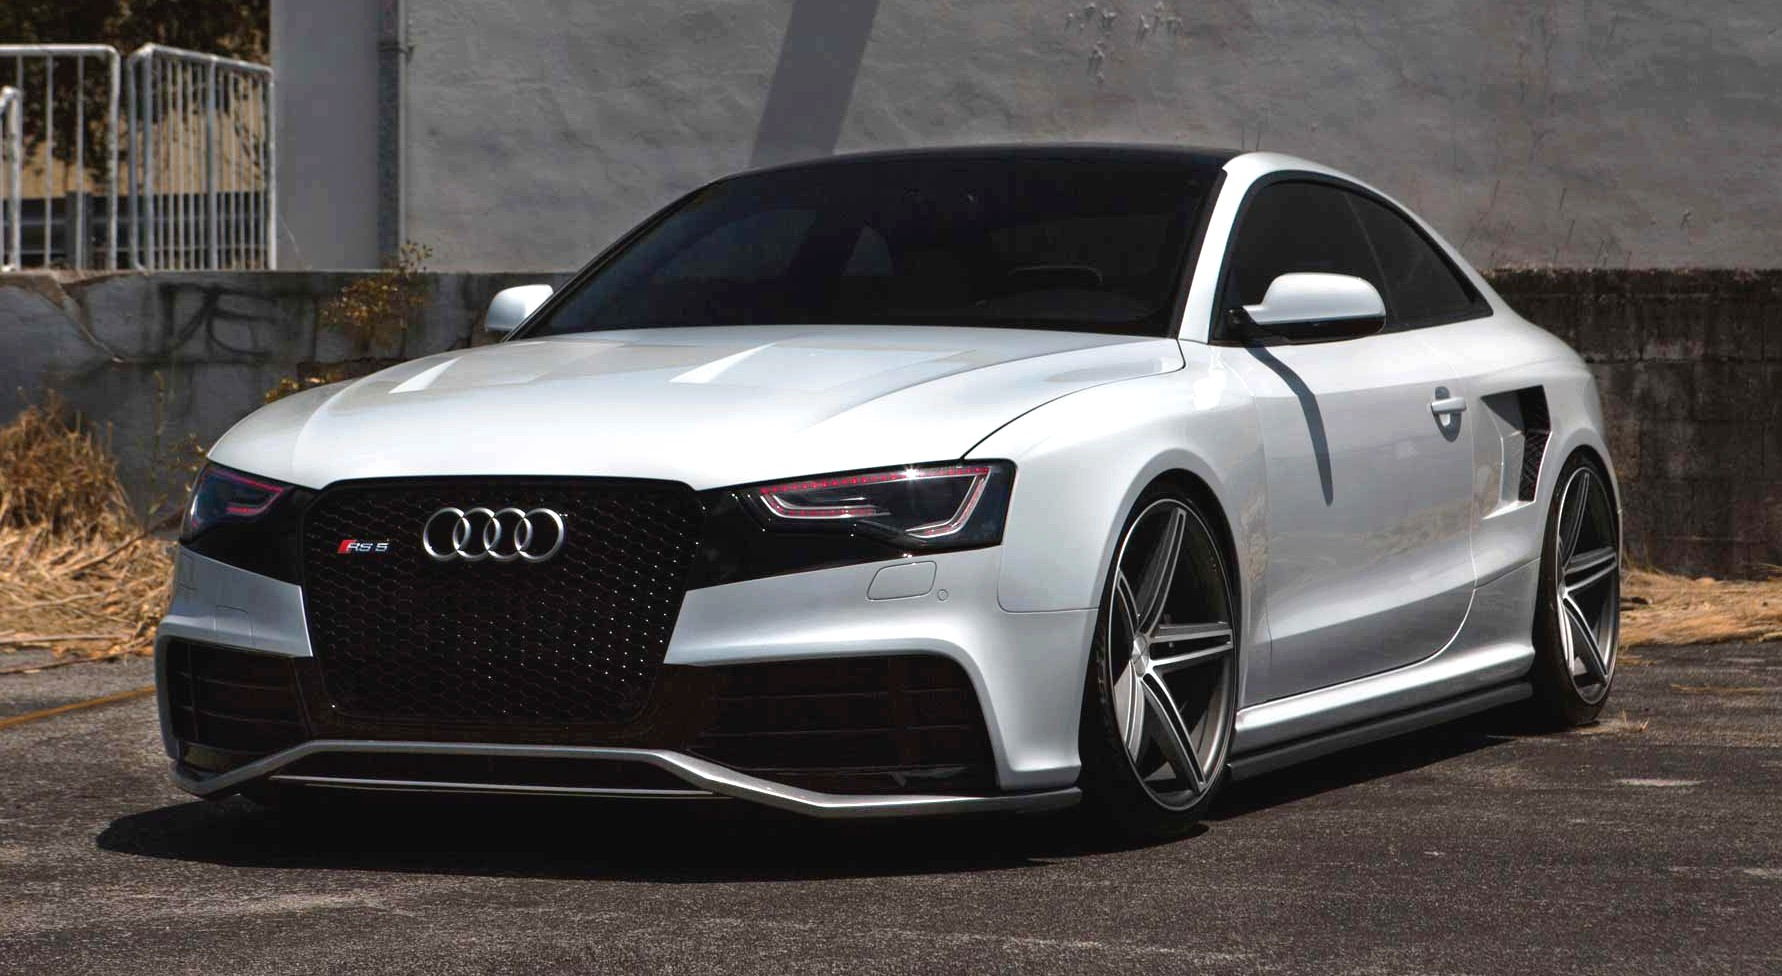 Angry Audi Rs5 On Vossen Wheels